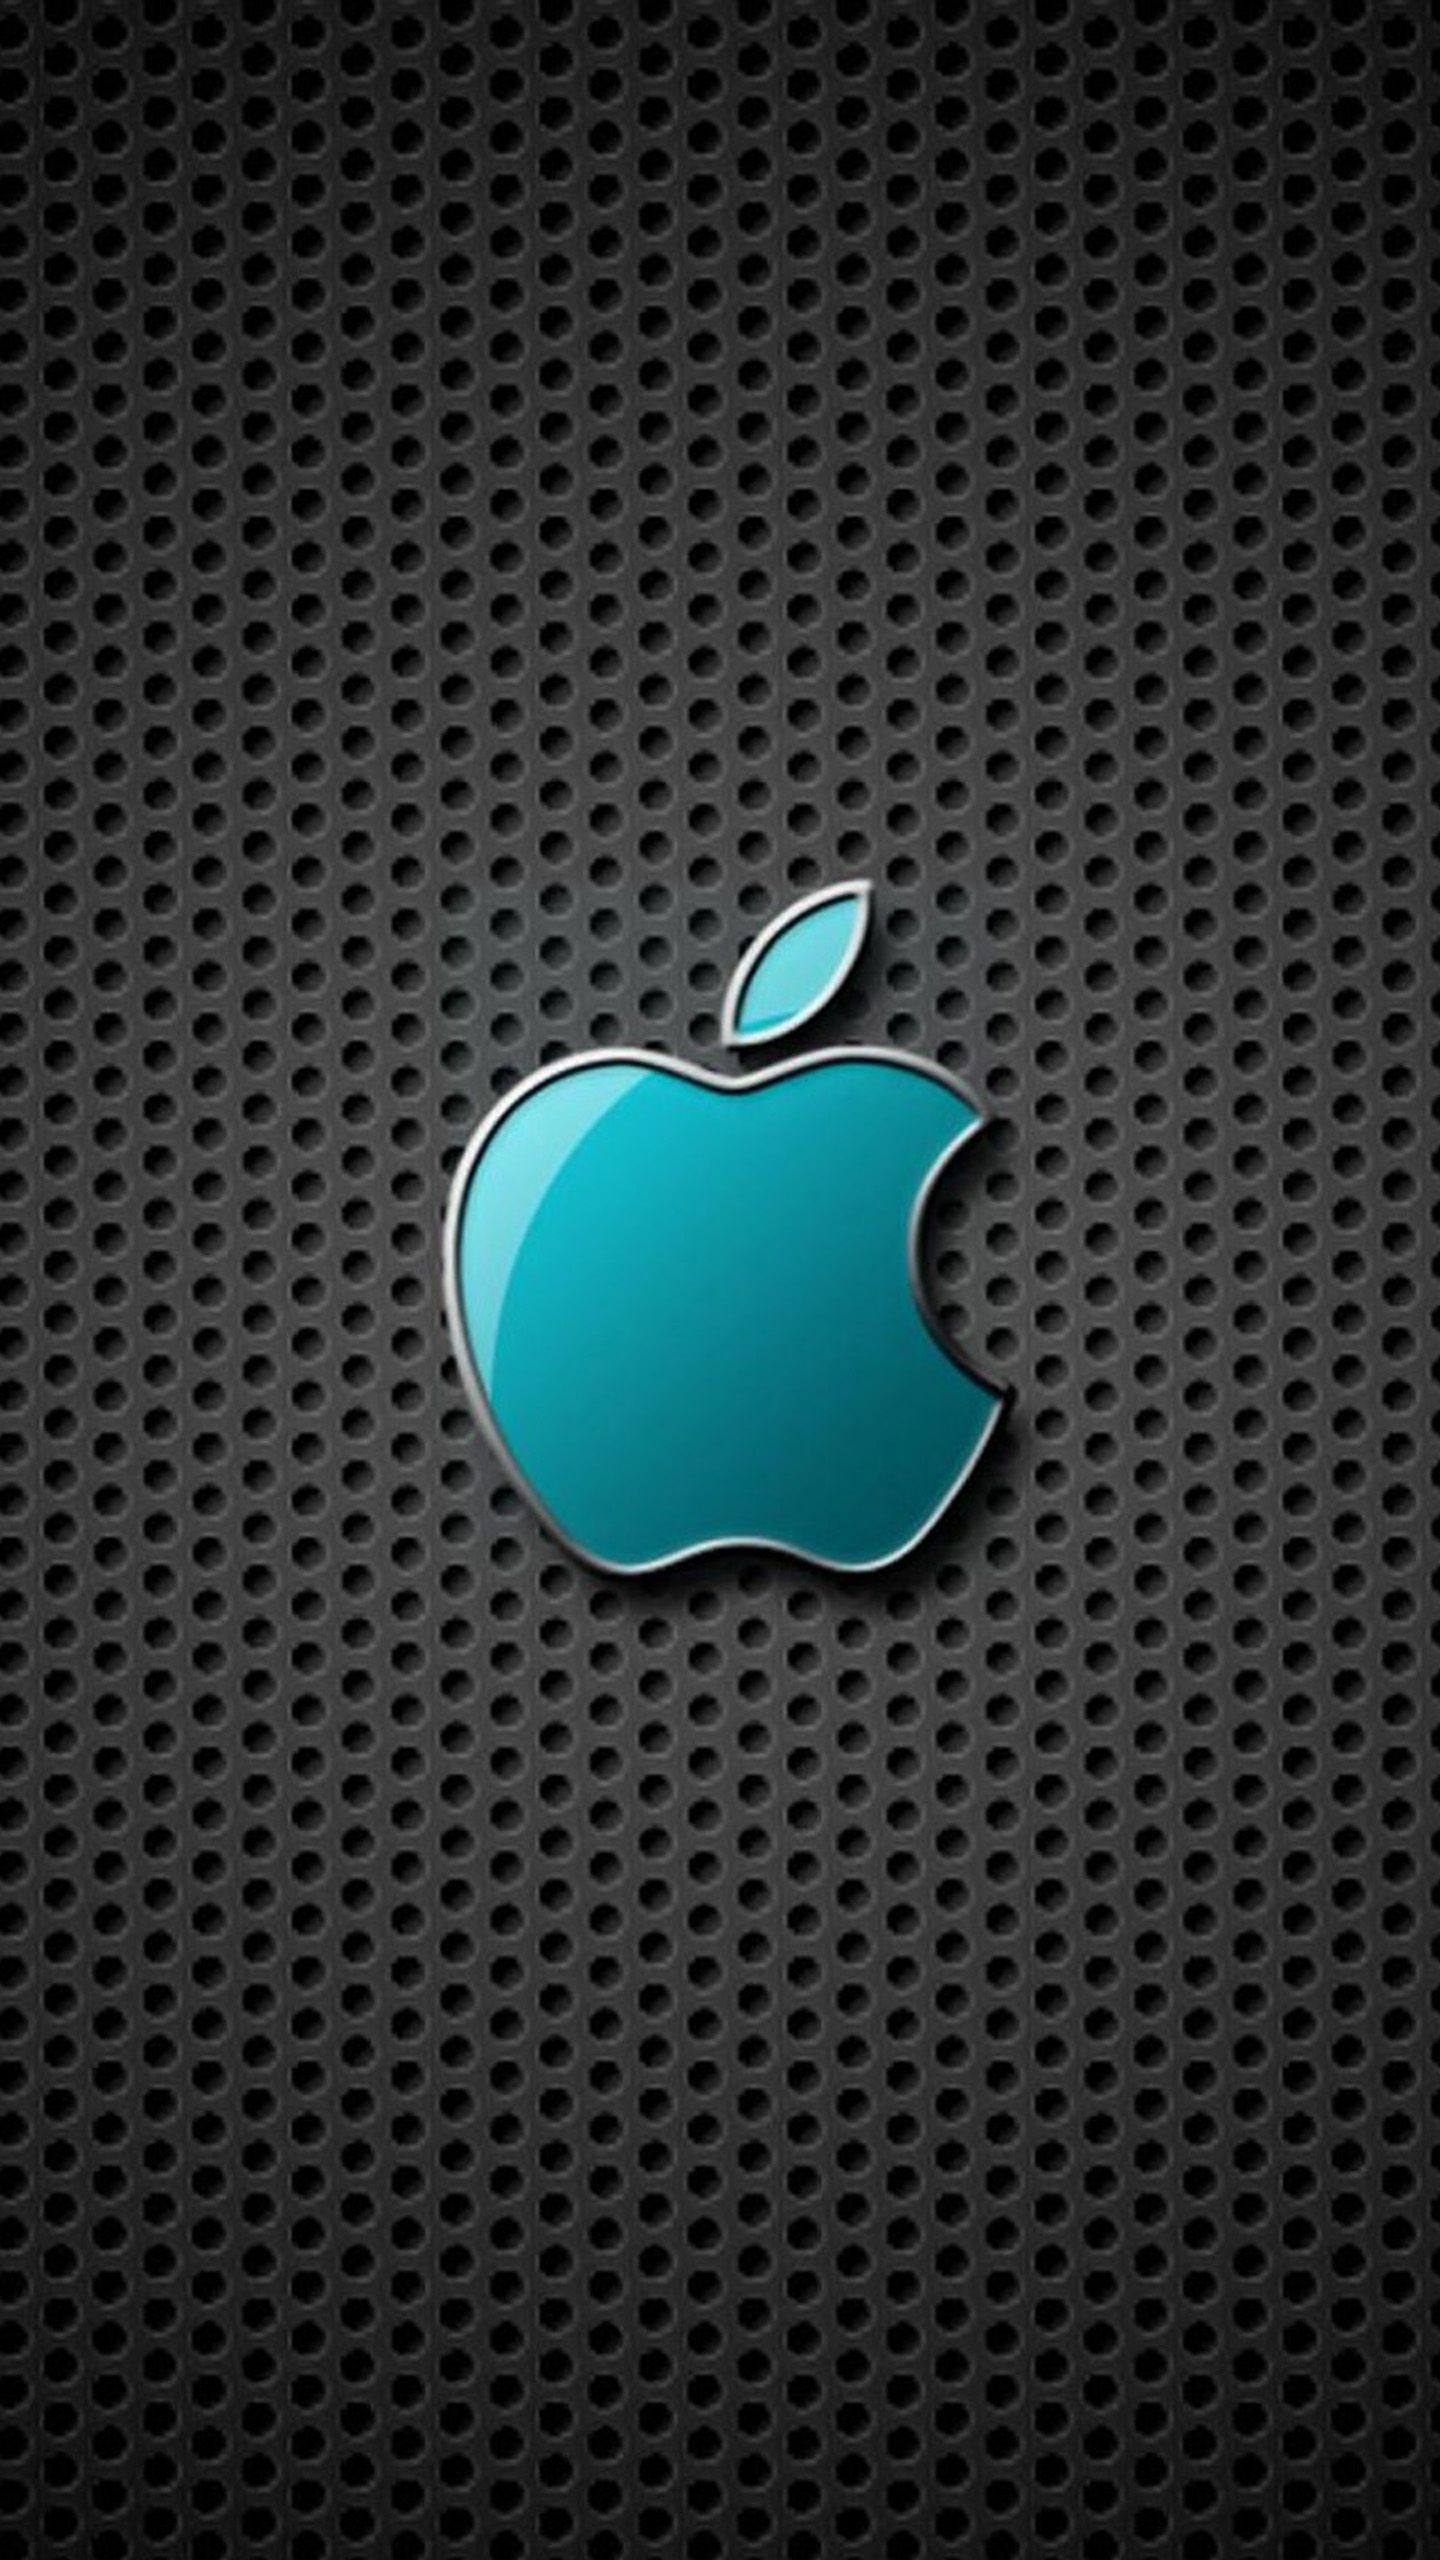 Blue, aqua, texture, logo, abstract, apple, wallpaper